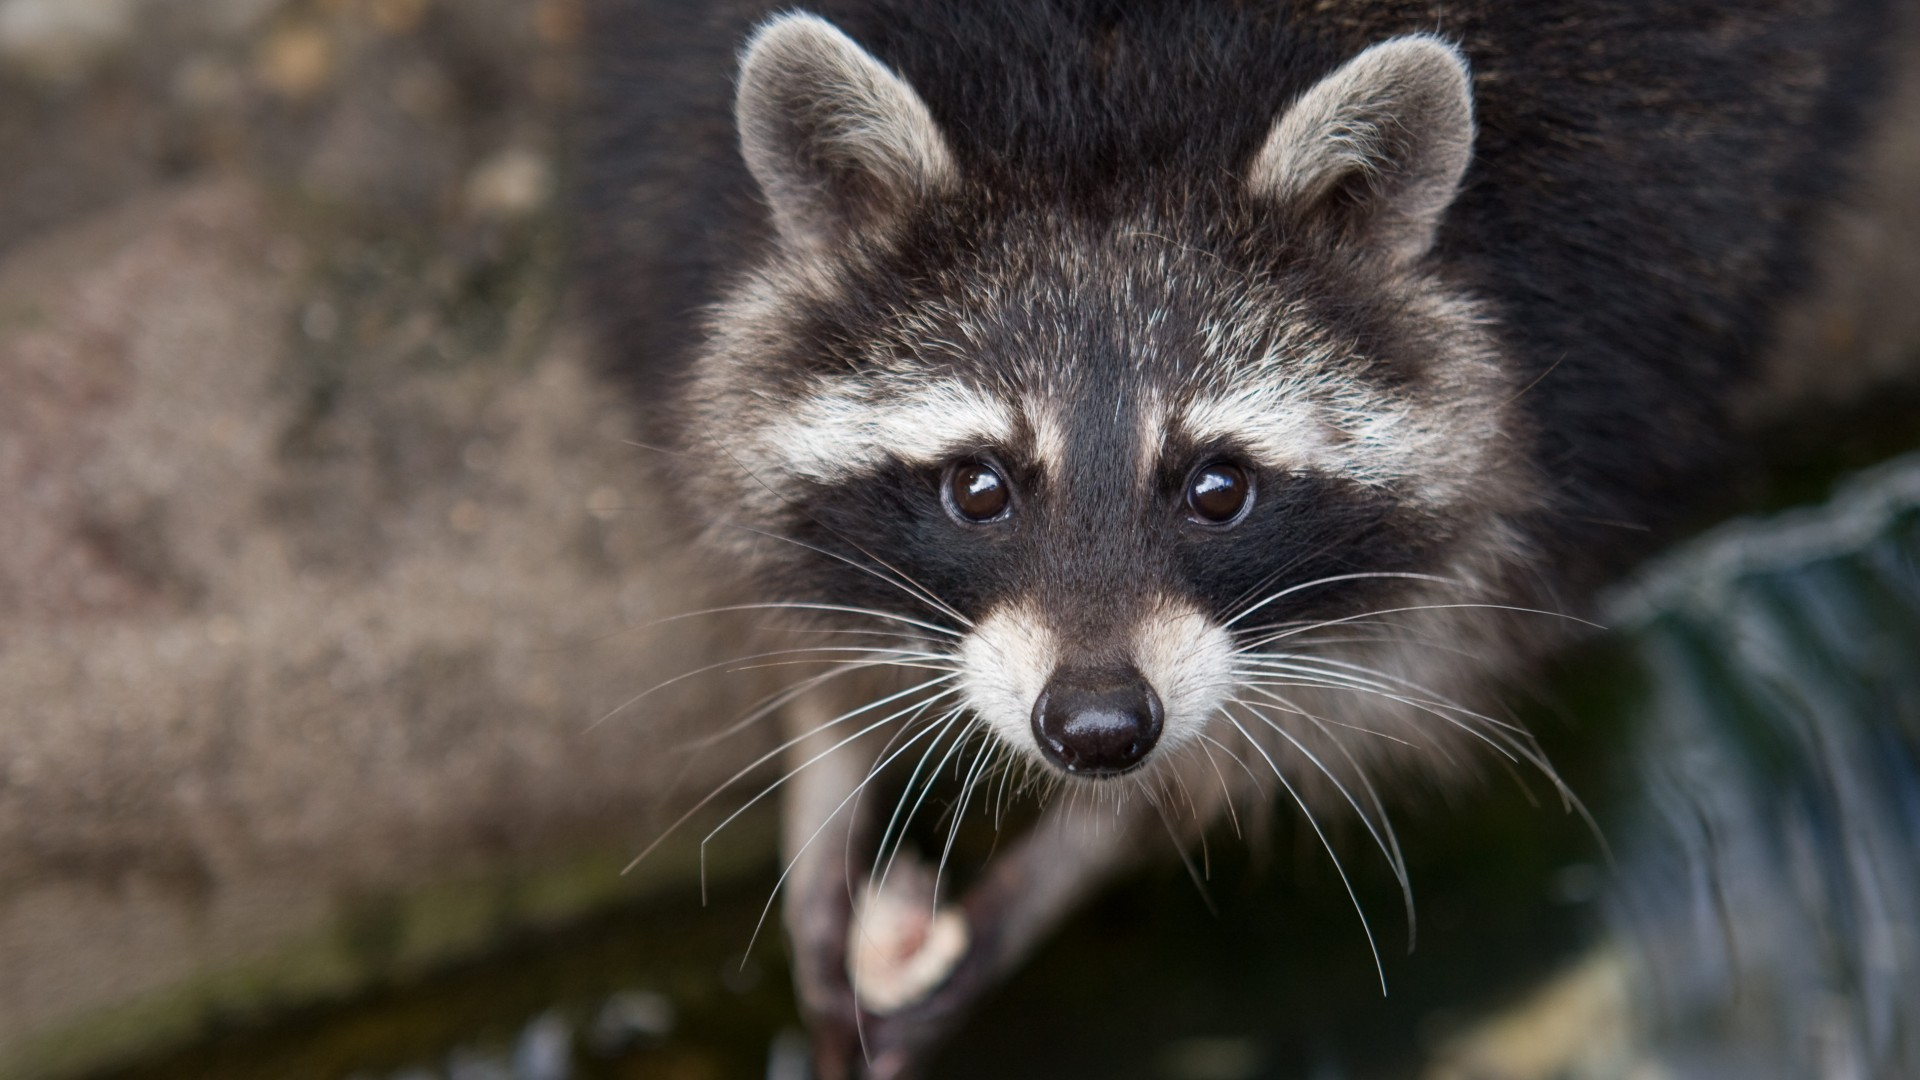 raccoon, eyes, look, fur, close-up, nature, animal (horizontal)